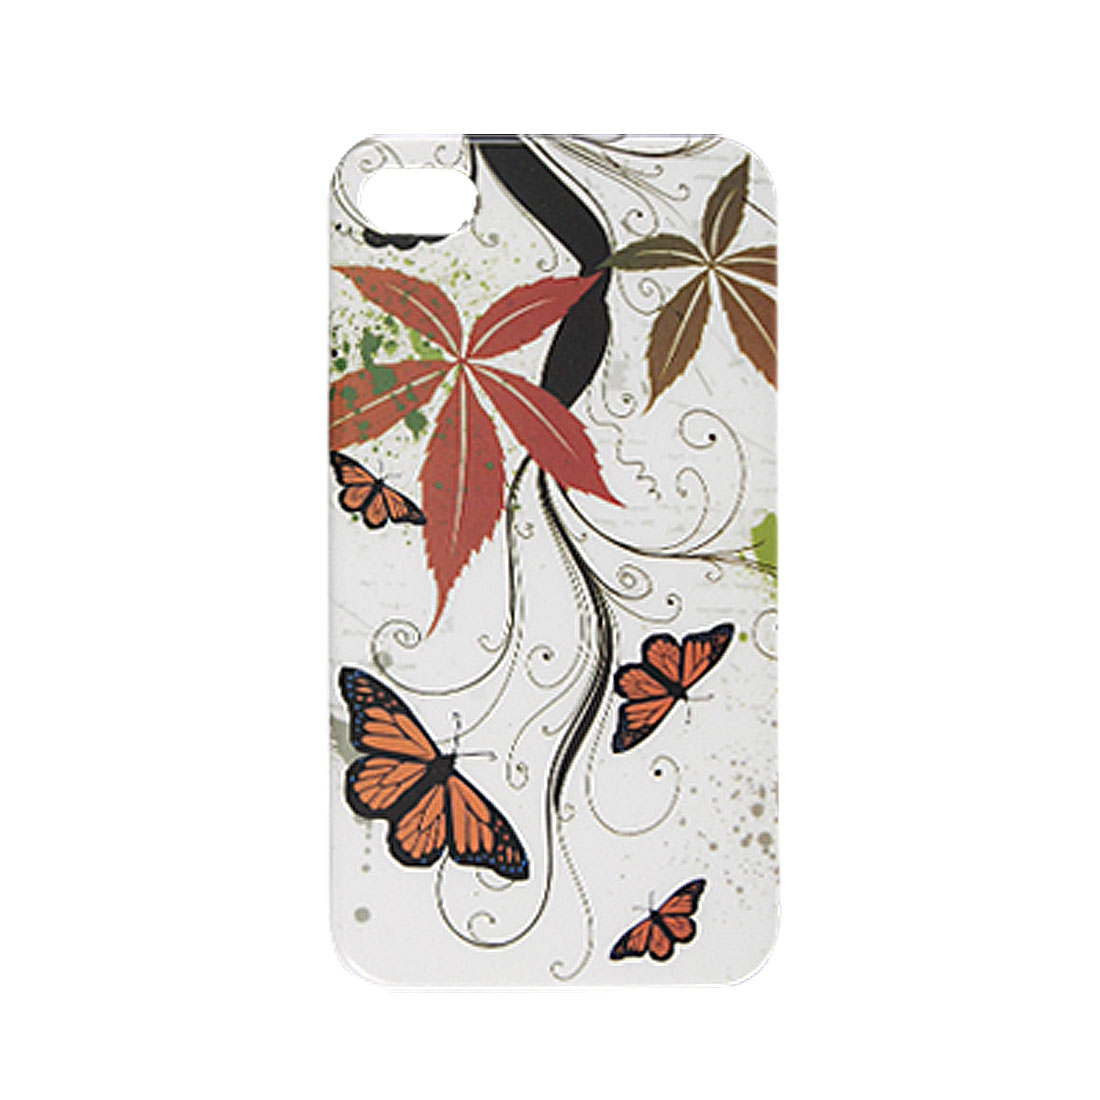 Plastic Butterfly Leaf Pattern IMD Back Case for iPhone 4G